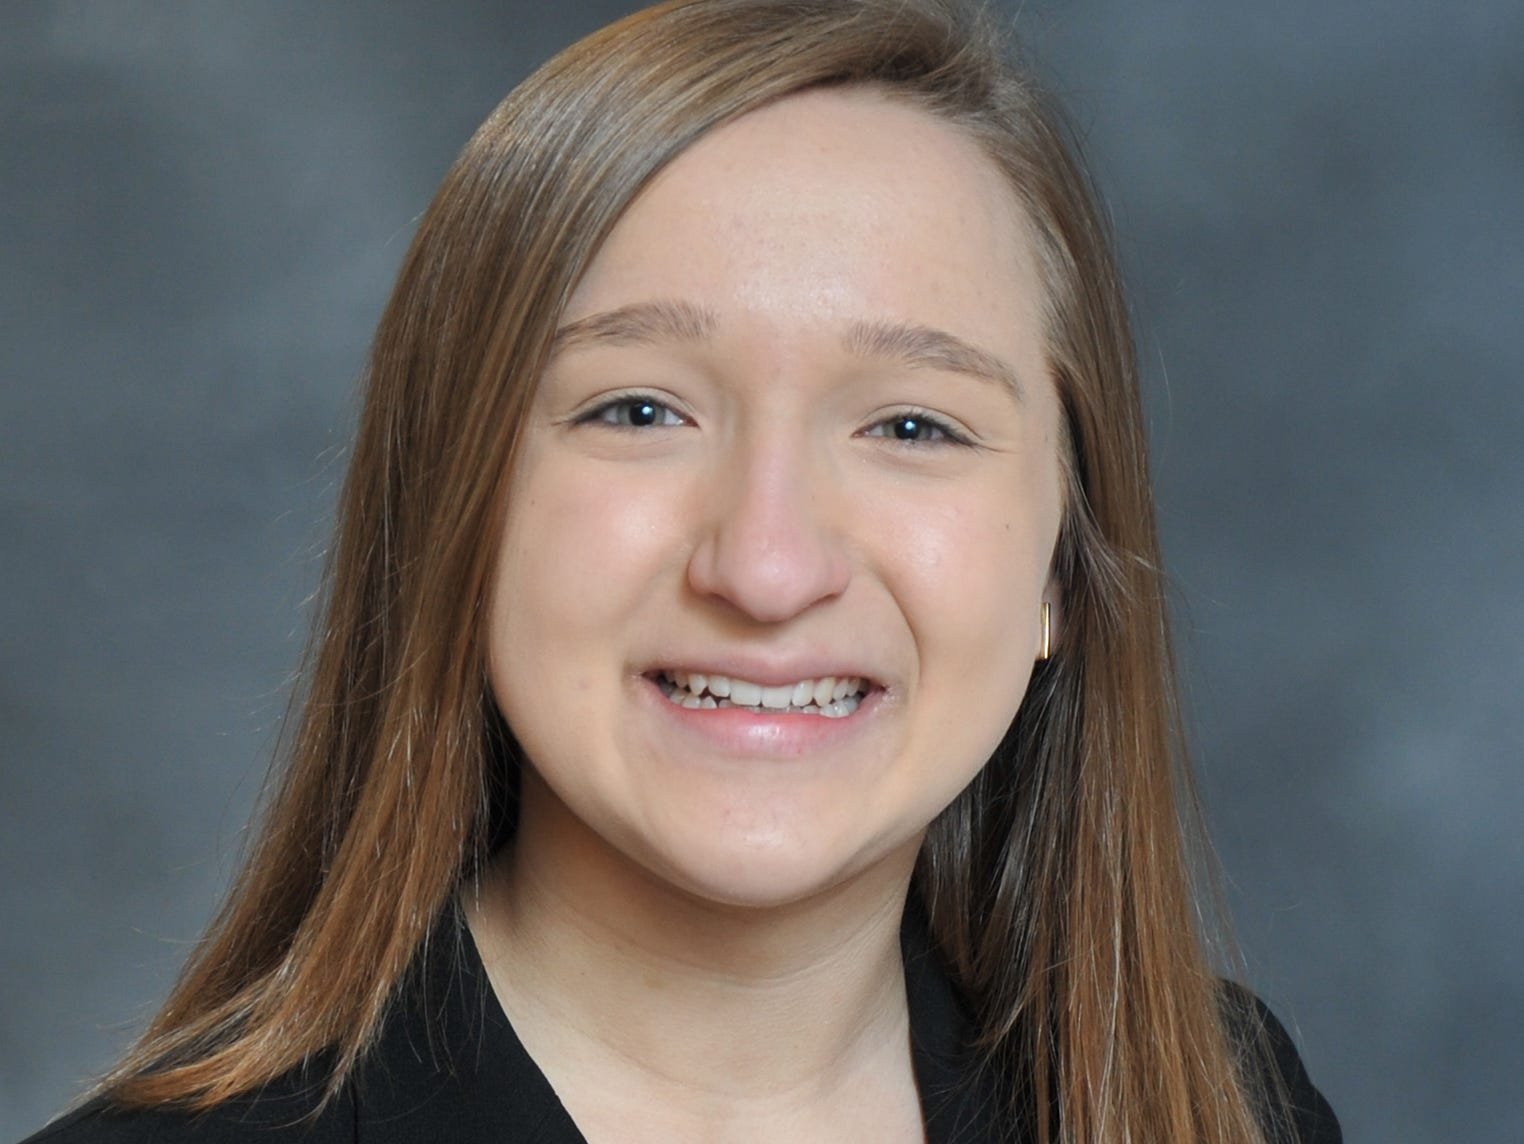 Olivia Smeltzer, Dallastown Area High School, Distinguished Young Women of York County participant.